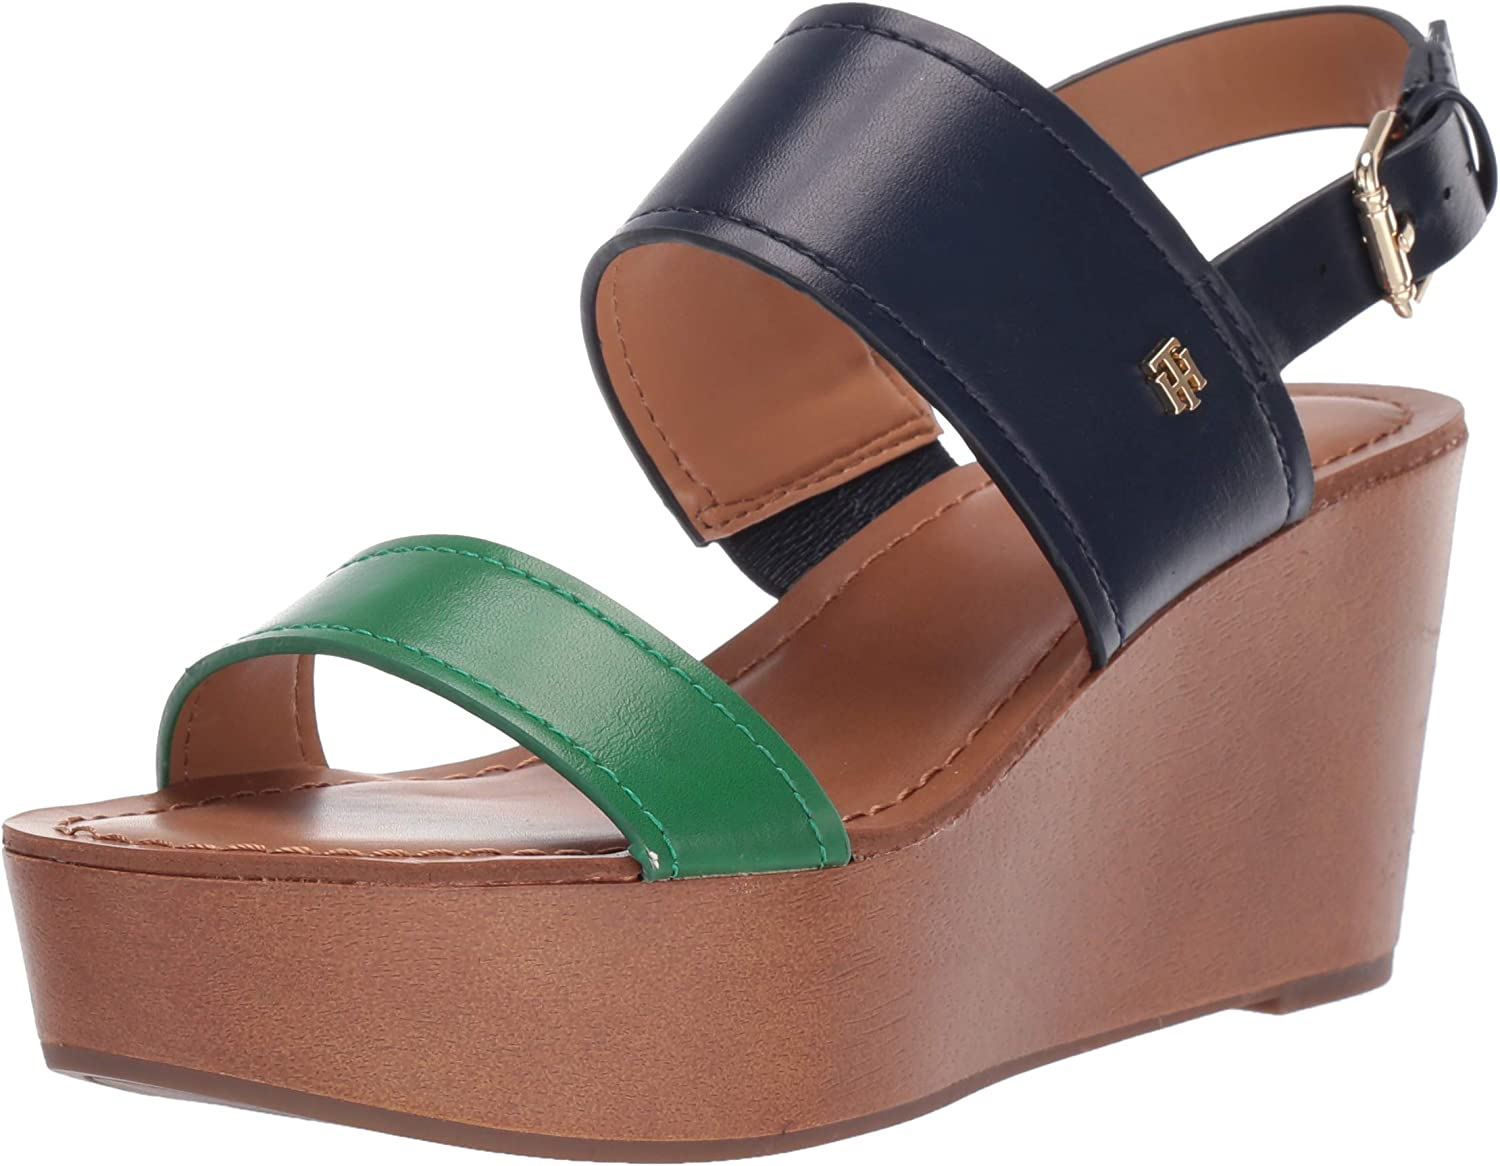 Tommy Challenge the lowest New arrival price of Japan ☆ Hilfiger Women's Sandal Wedge Wilder